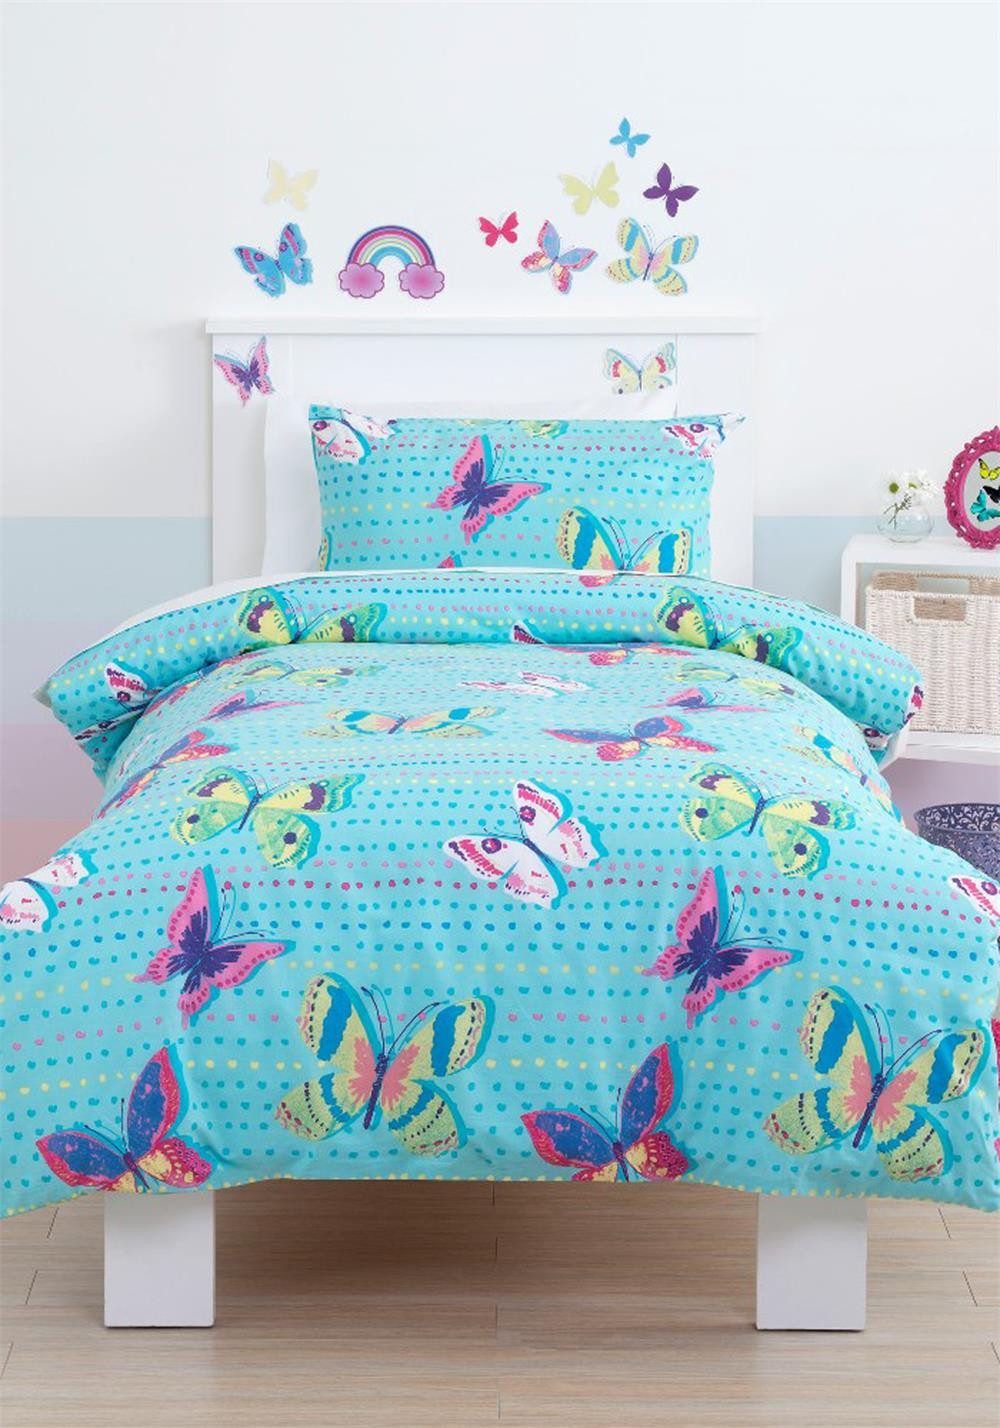 Just Kidding Rainbow Butterfly Duvet Cover Set, Bubble Gum Blue